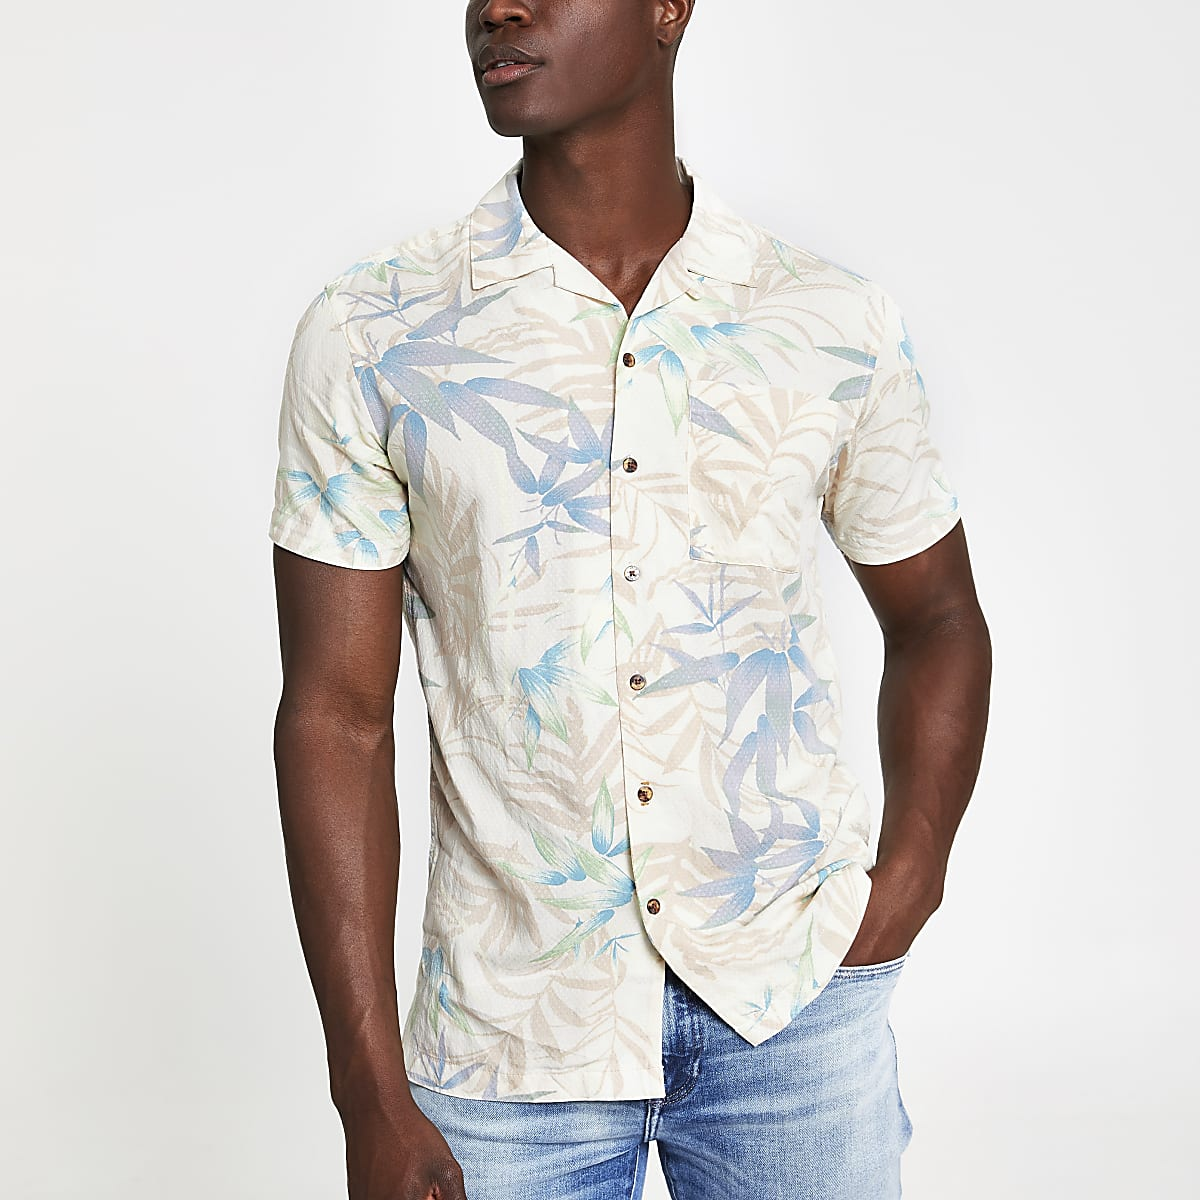 Jack and Jones white print short sleeve shirt